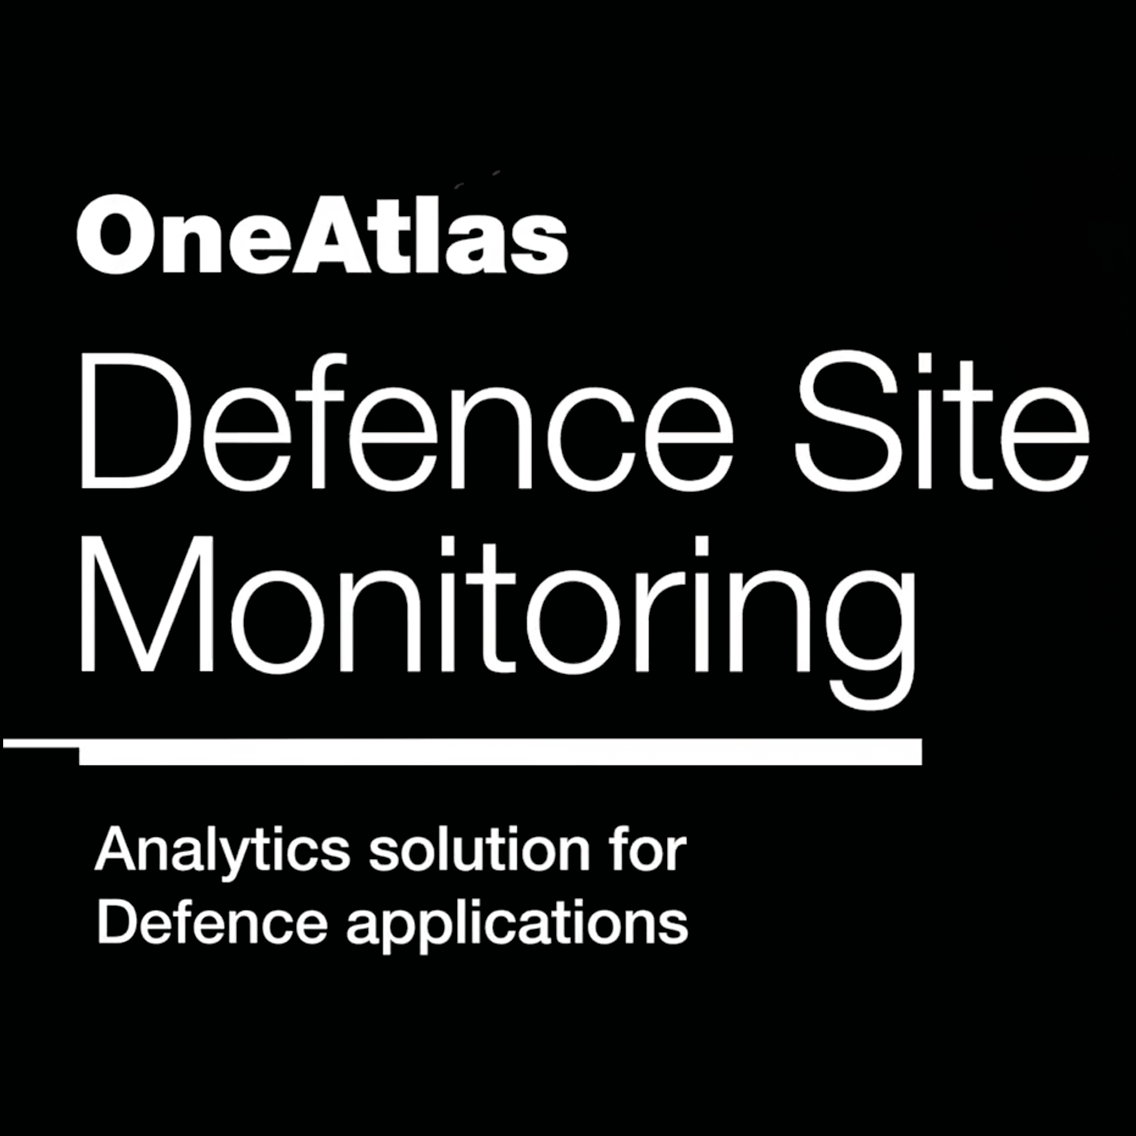 Defence Site Monitoring